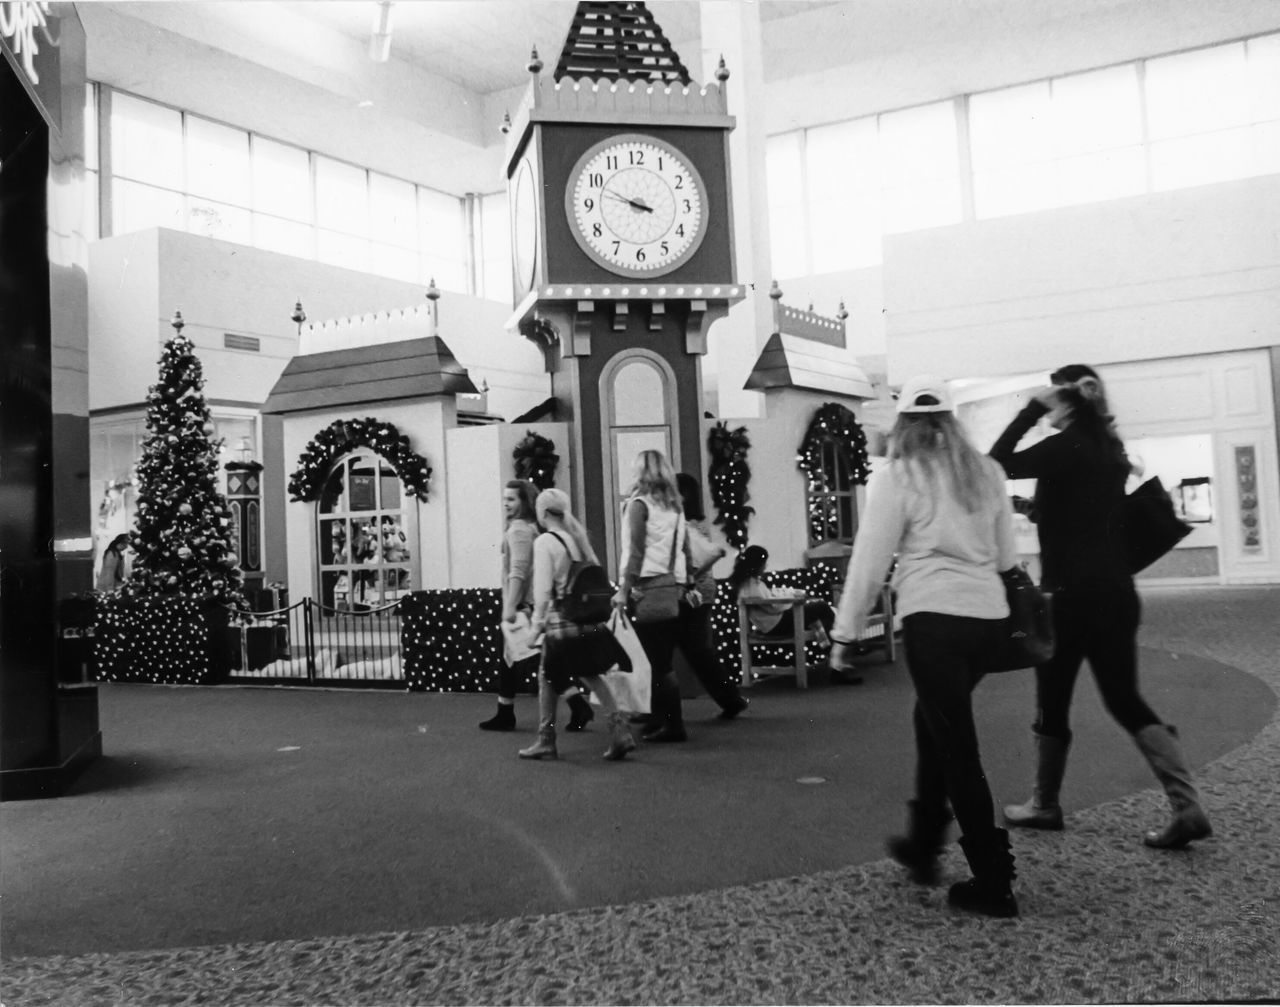 Walking Away Series - Black Friday Clock Time Full Length Adults Only Indoors  Women People Clock Face Day Mall Black & White B&w Street Photography Leisure Activity Real People Hanging Out Taking Photos Ieica_r7 Filmisnotdead Film Camera Illfordhp5 Film Photography Filmcamera Film